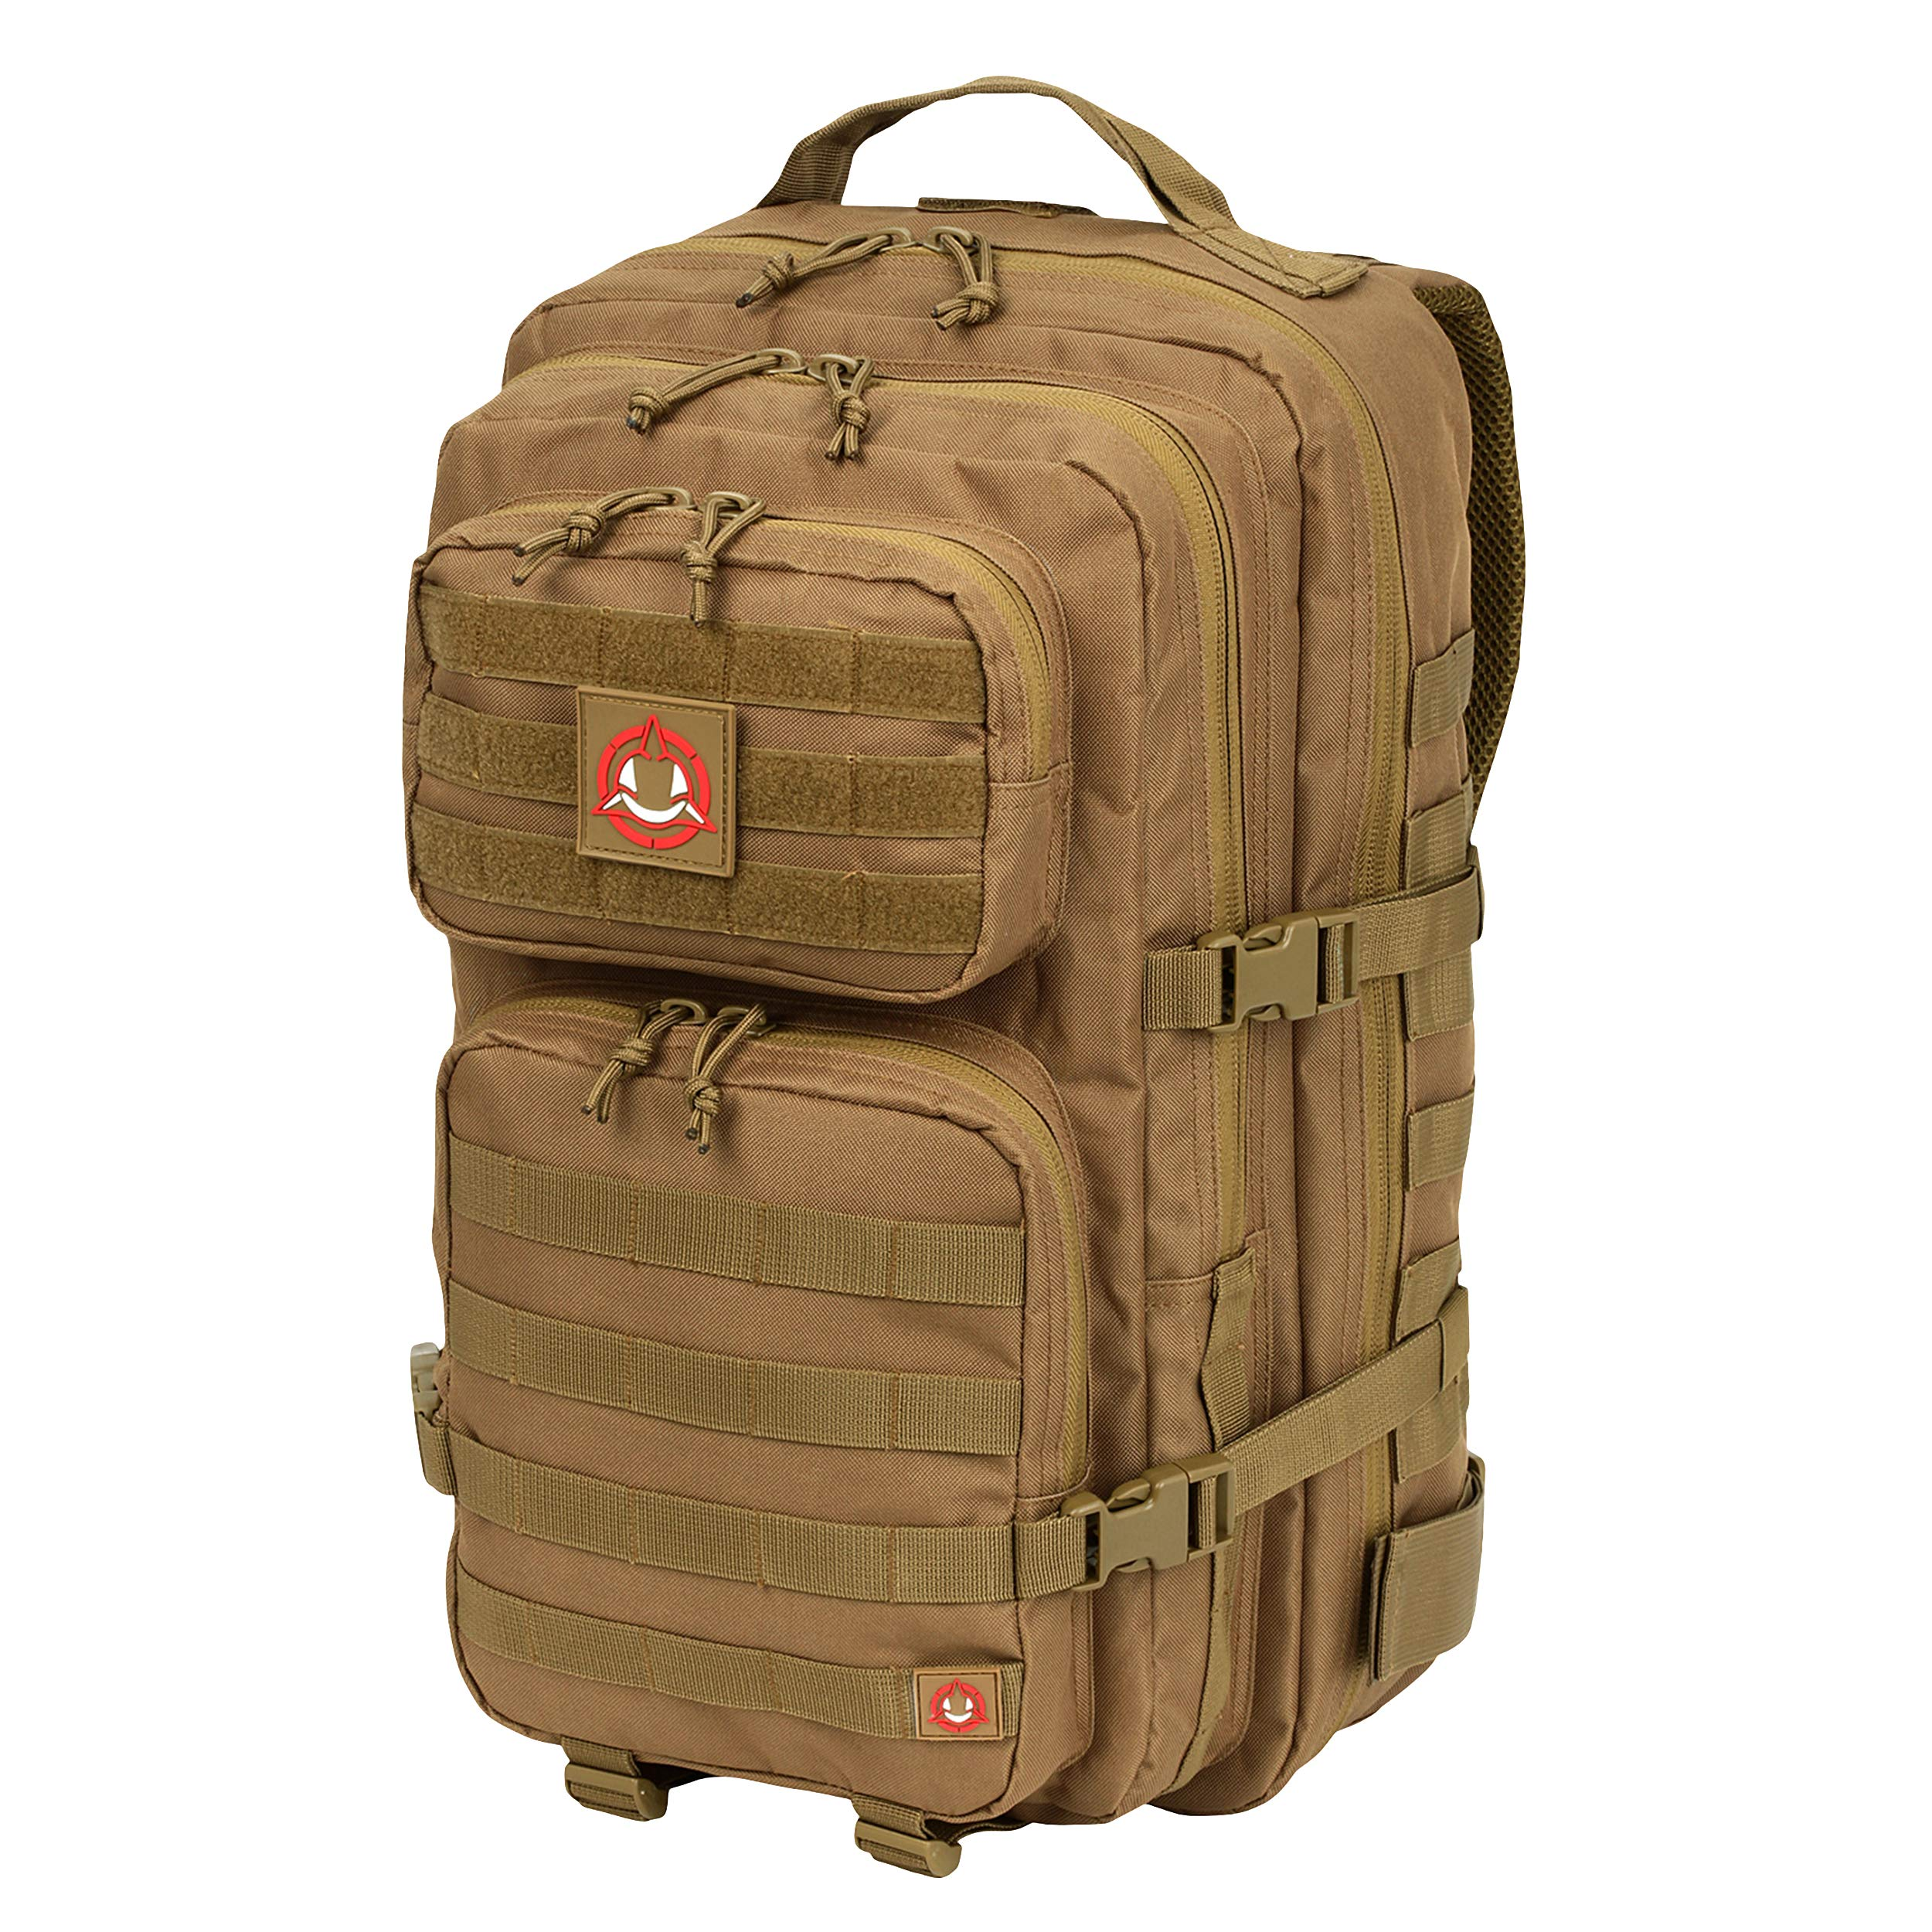 Orca Tactical Military Backpack - Large Military Grade Backpack - Army Inspired Salish 40L - External MOLLE Mounted 3 Day Survival Bag - Rucksack Pack (Coyote Brown)